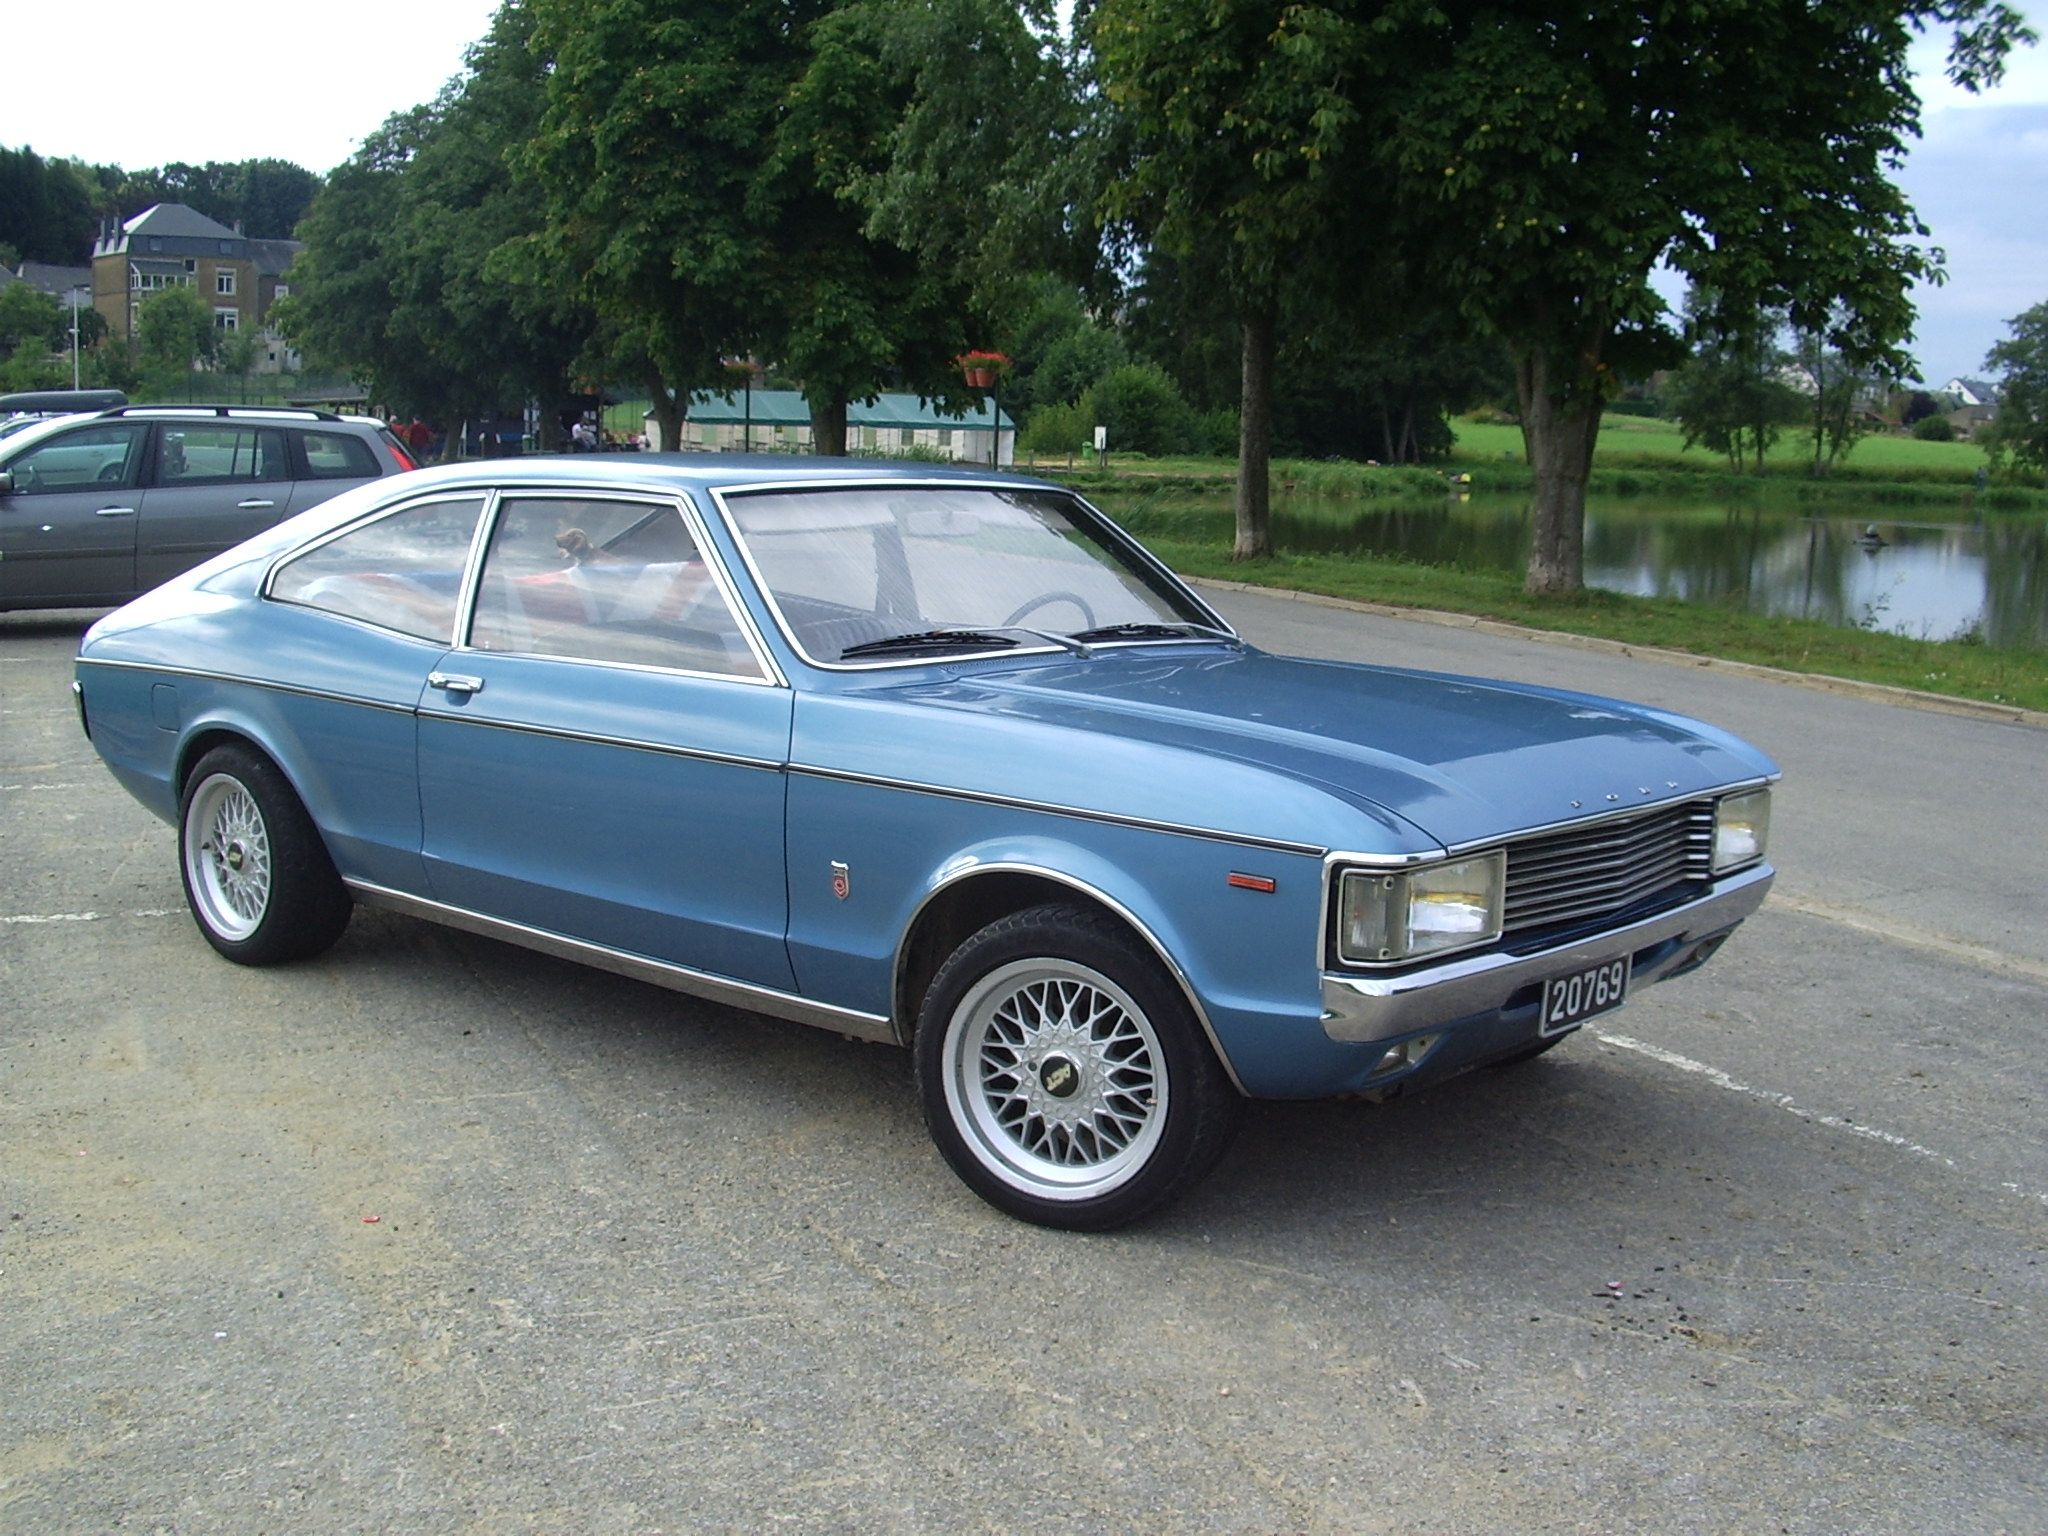 Pin By Mika Kataja On Ford Ford Granada Ford Classic Cars